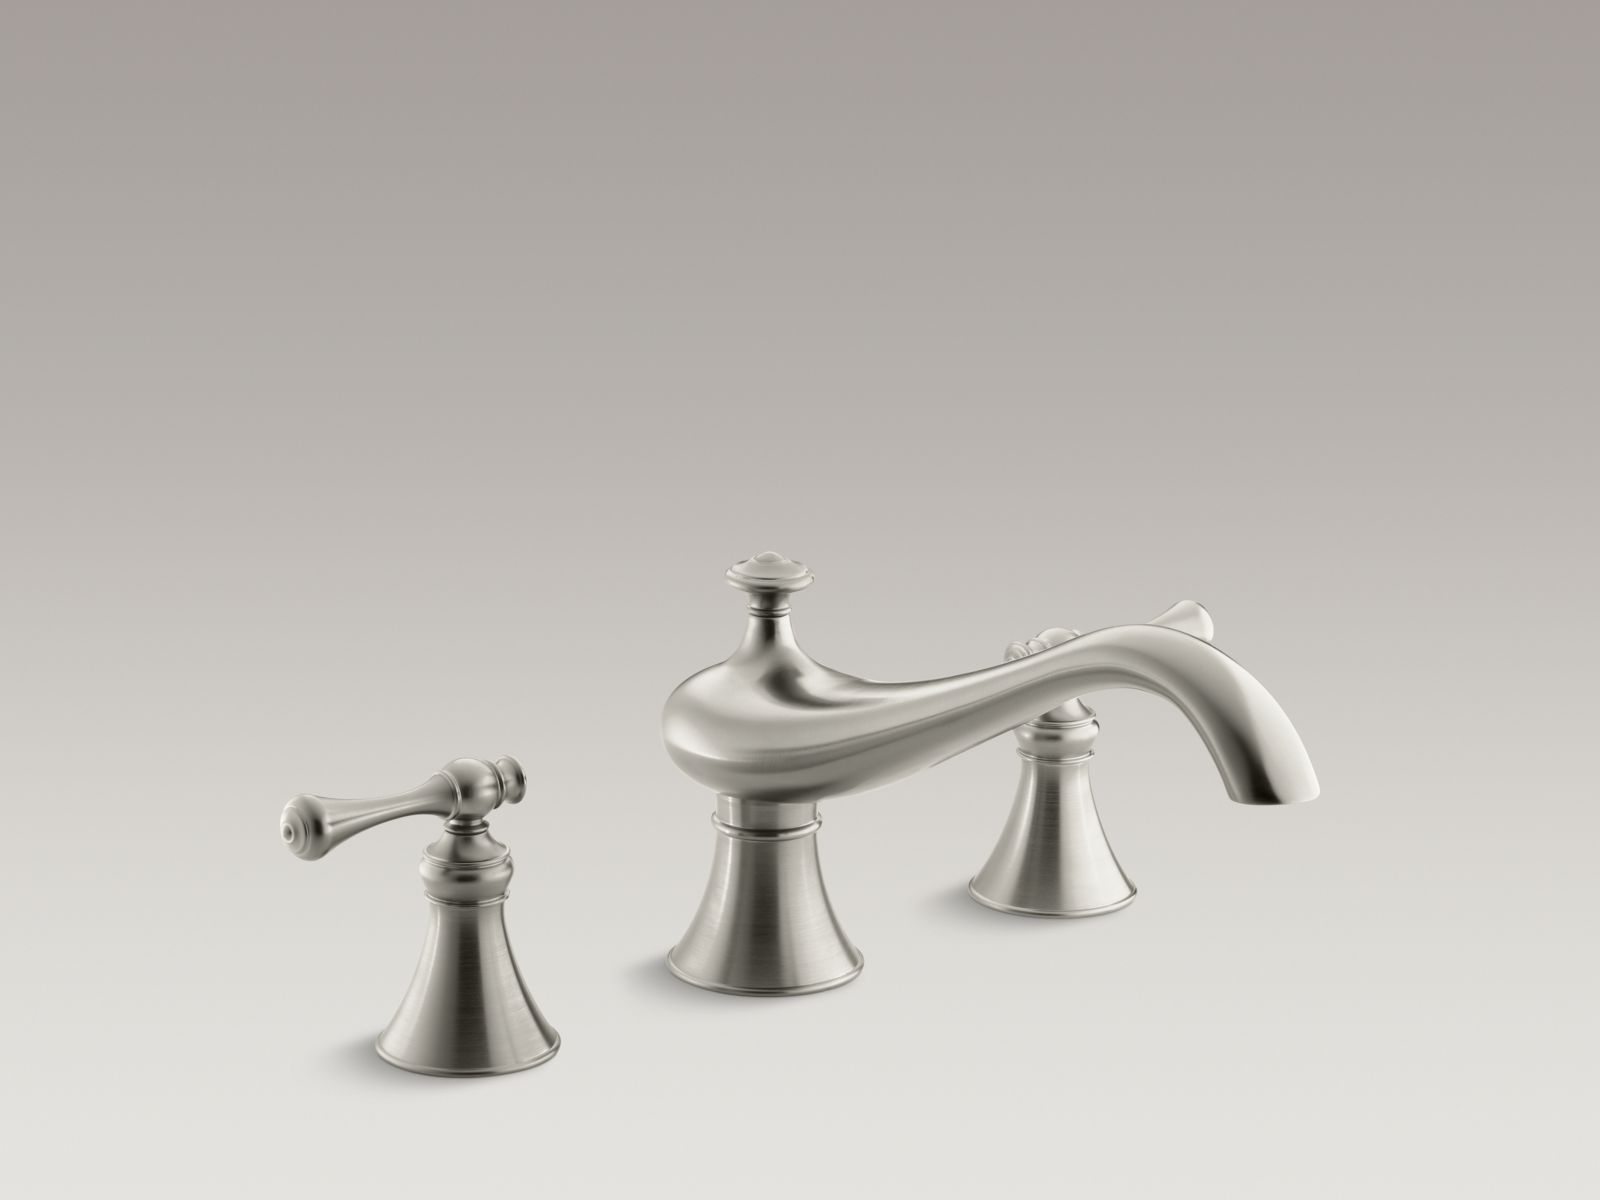 "Kohler Revival® K-T16119-4A-BN Deck-mount bath faucet trim for high-flow valve with 9-5/8"" spout, traditional lever handles, valve not included Vibrant Brushed Nickel"